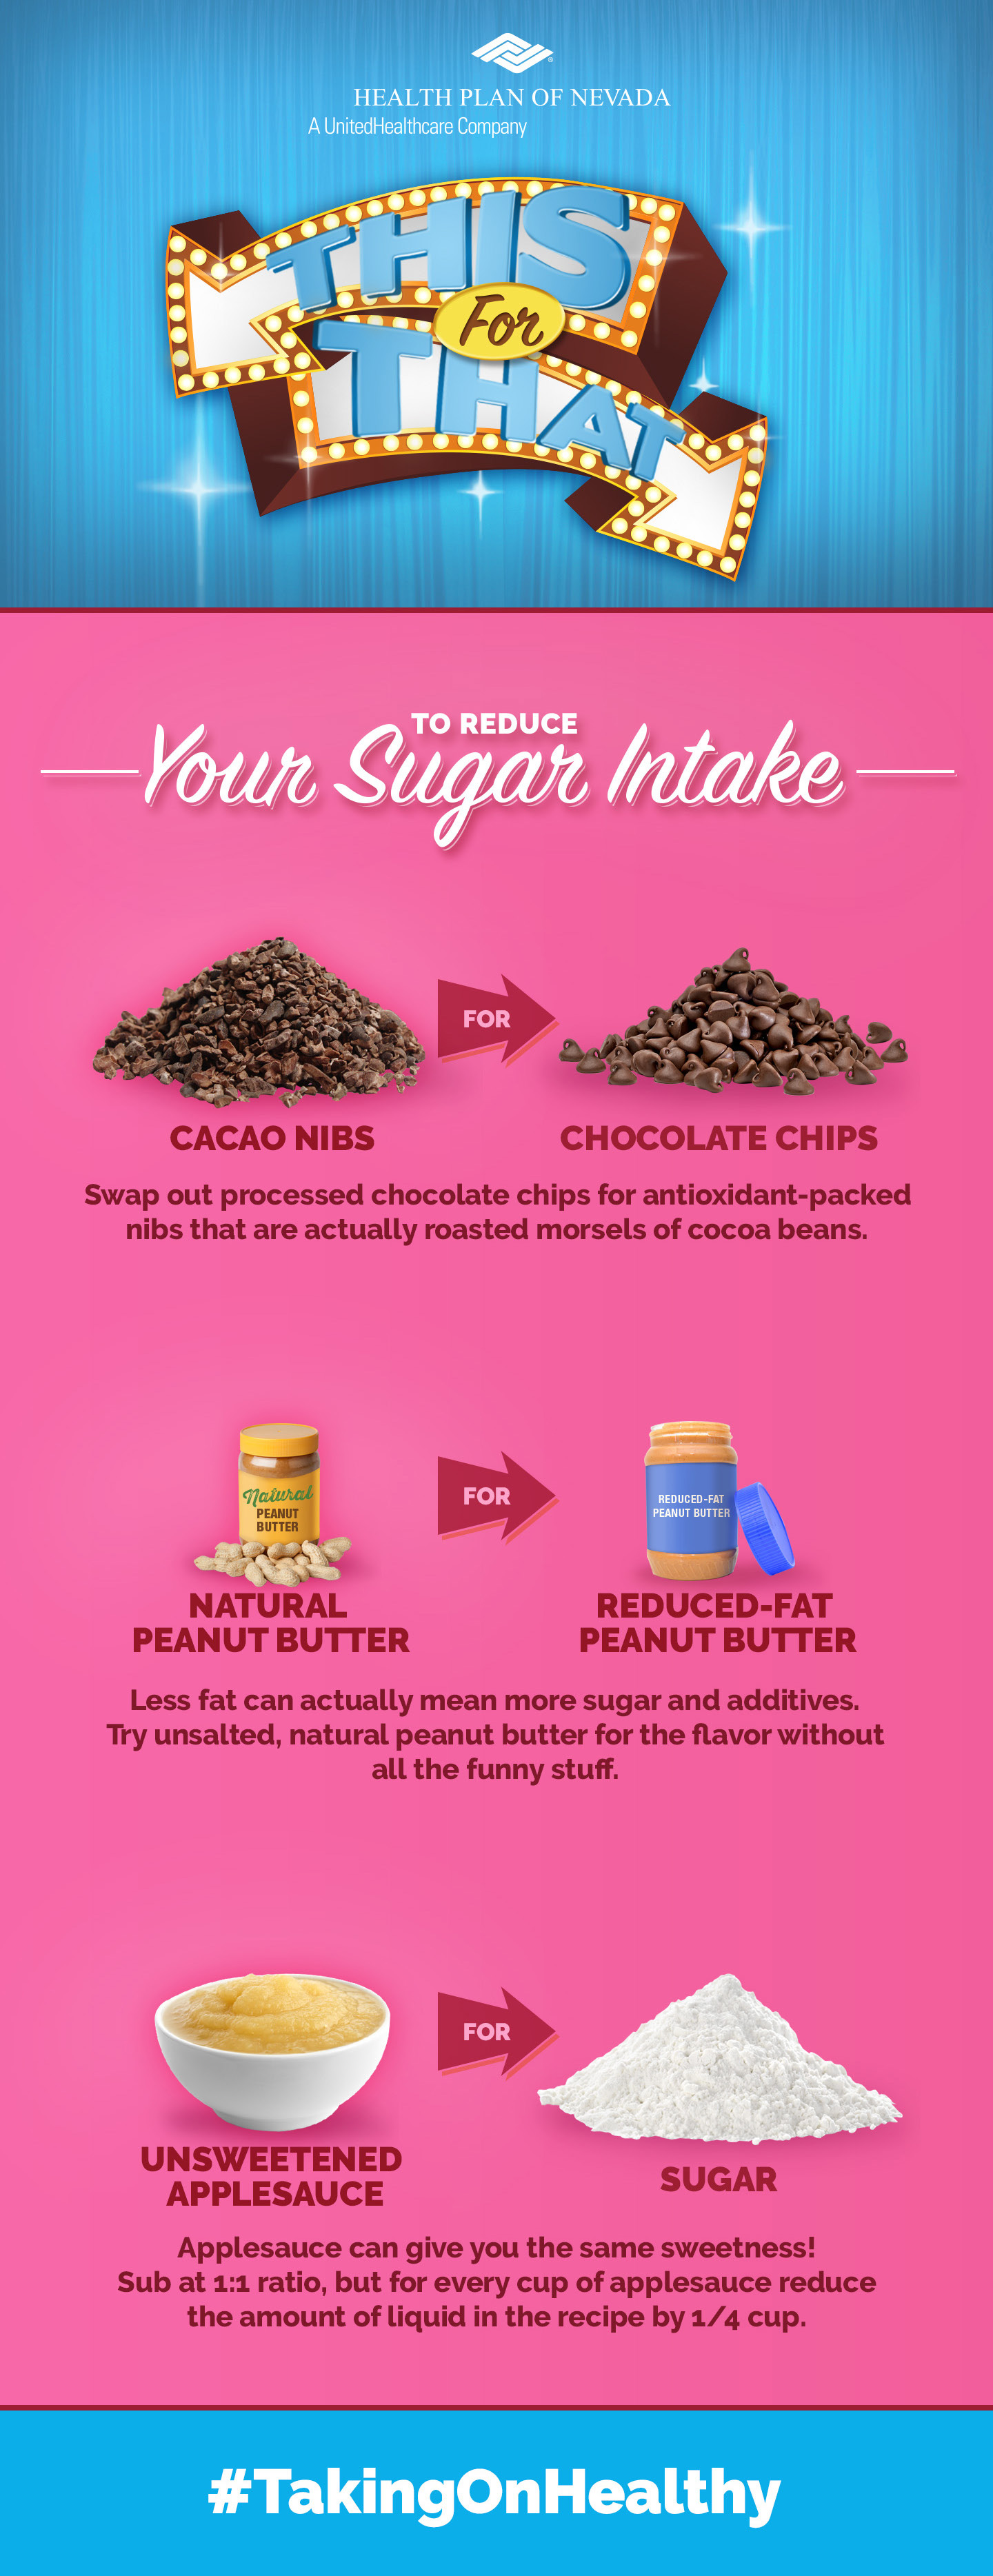 Healthy Food Swaps - Reduce Sugar Intake